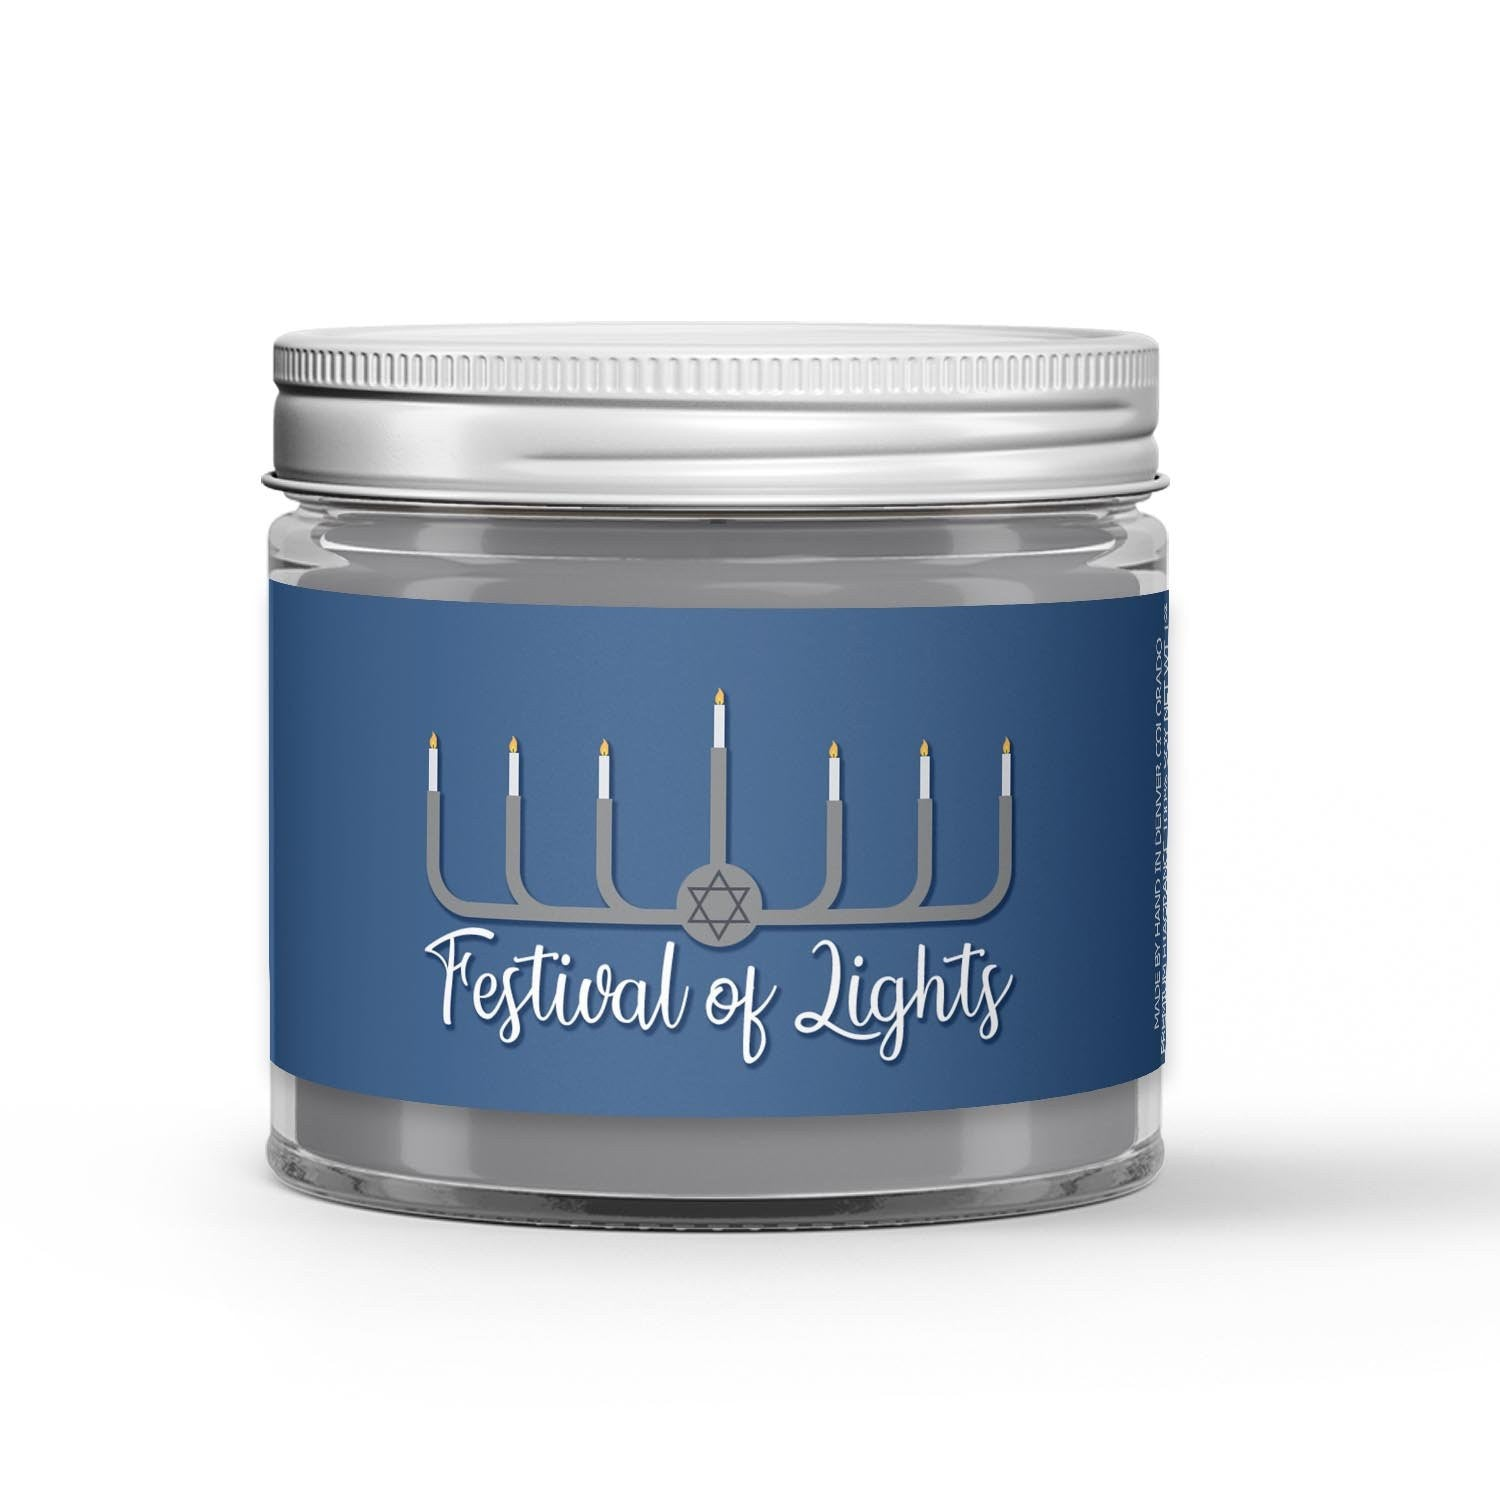 Festival of Lights Candle